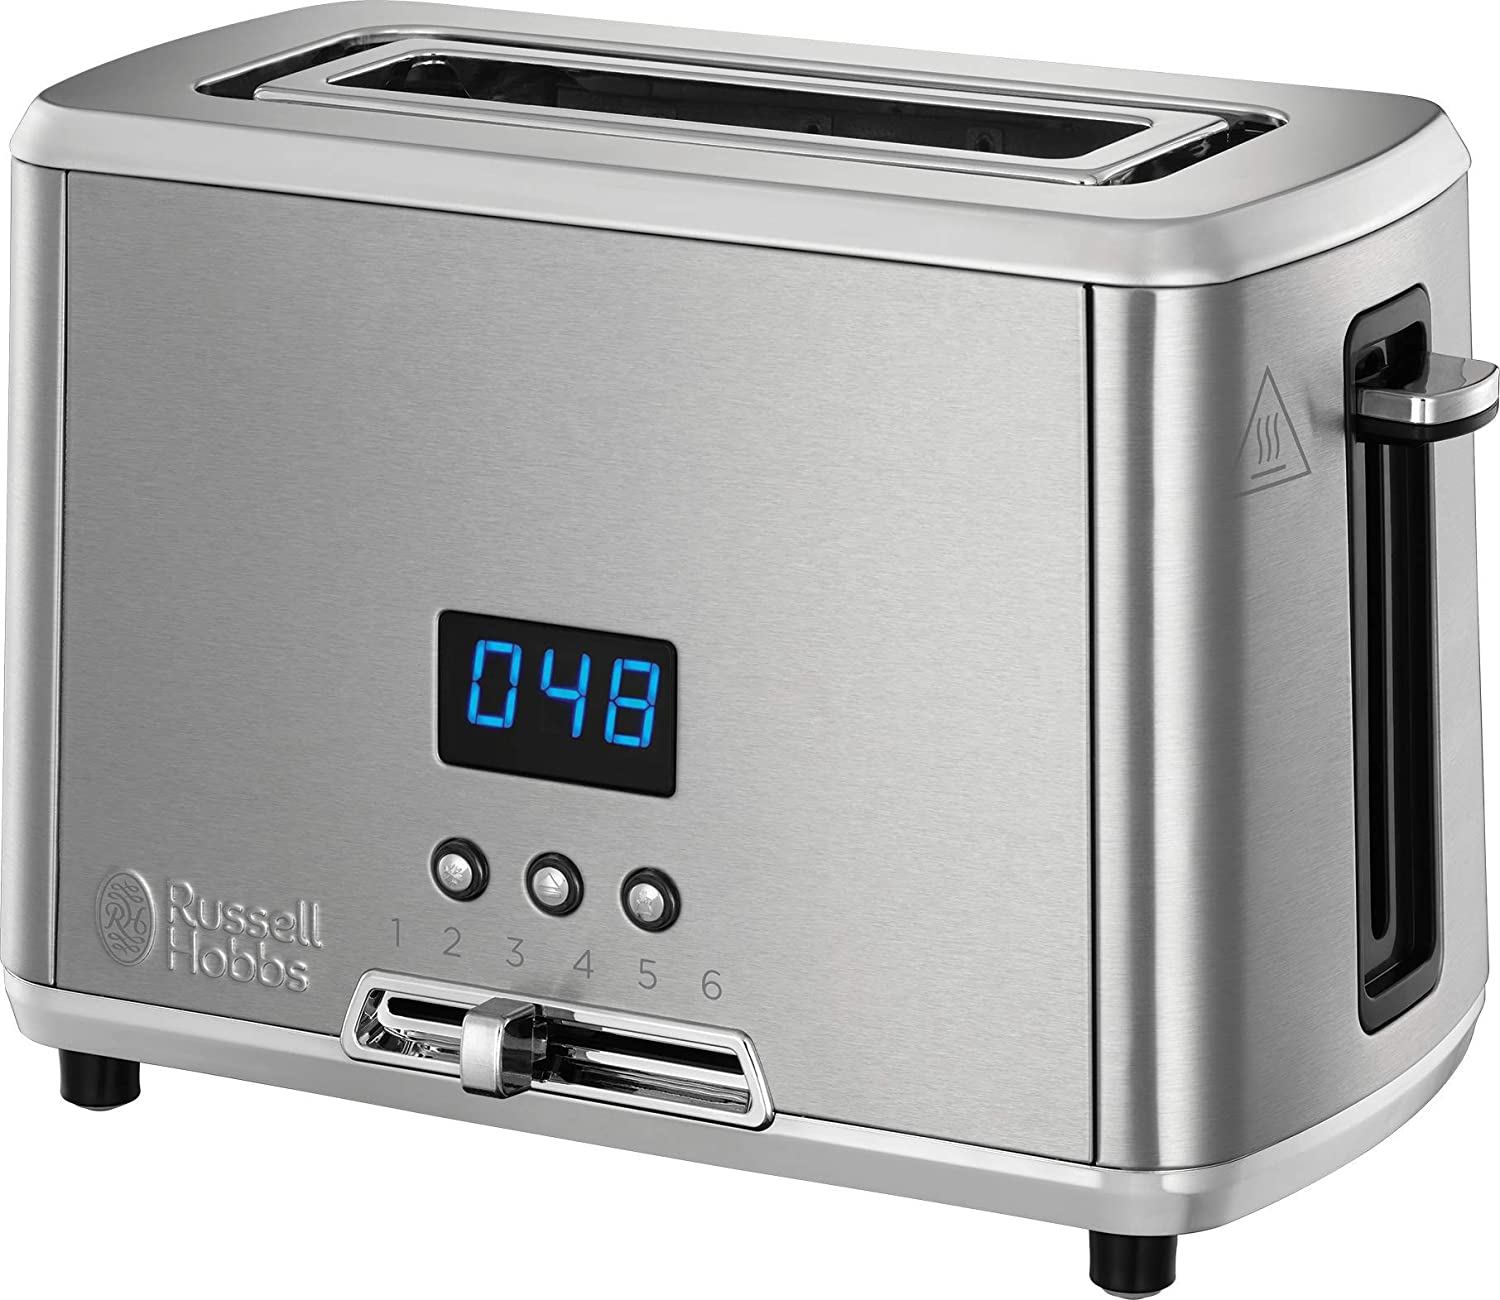 727fd9635 Russell Hobbs Compact Home Small Toaster, One Slice with Digital Countdown  Display, Stainless Steel, 24200: Amazon.co.uk: Kitchen & Home